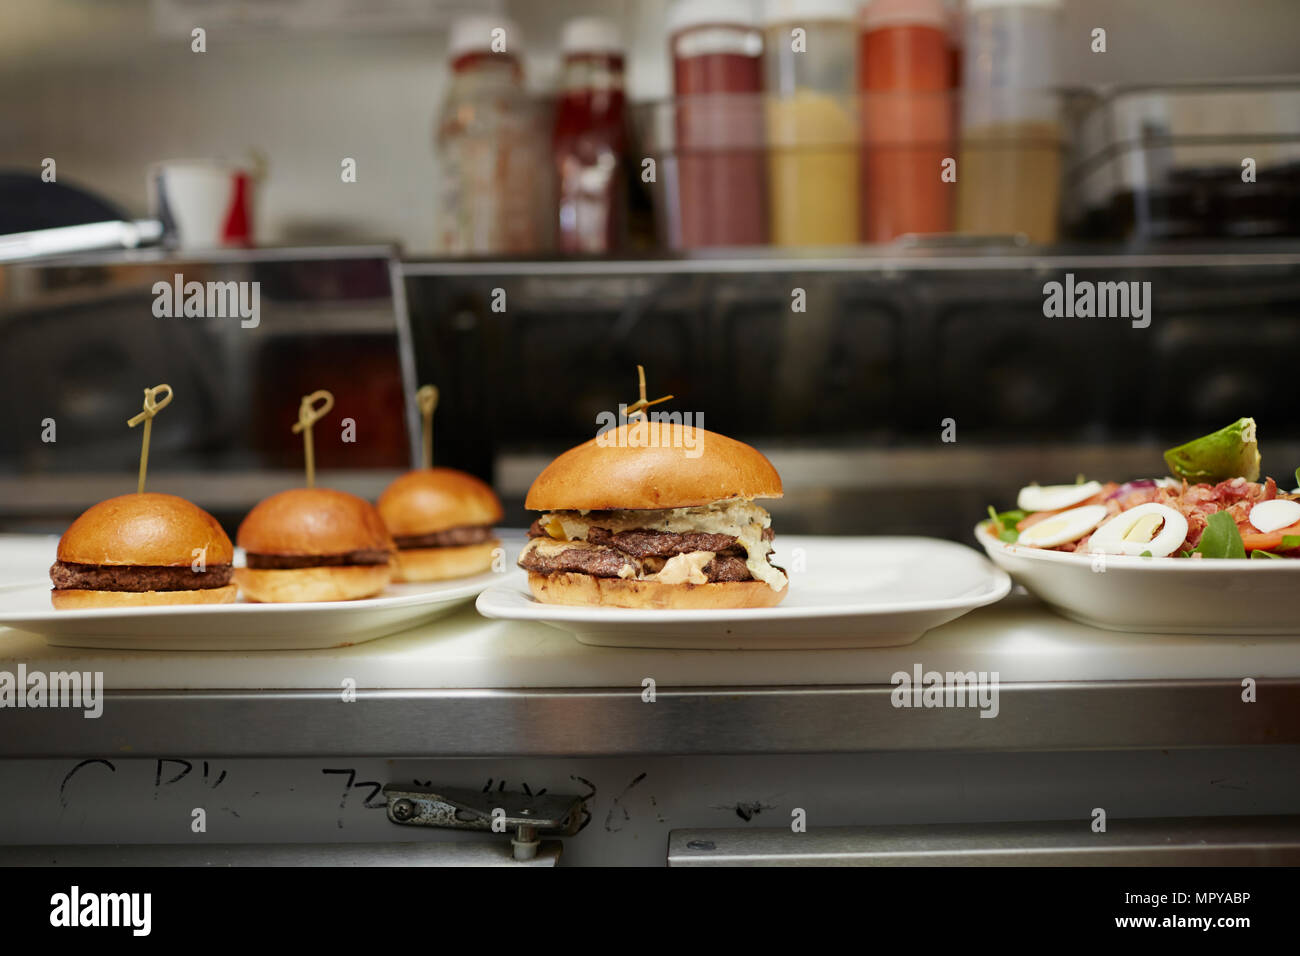 Burgers served in plates on kitchen counter - Stock Image